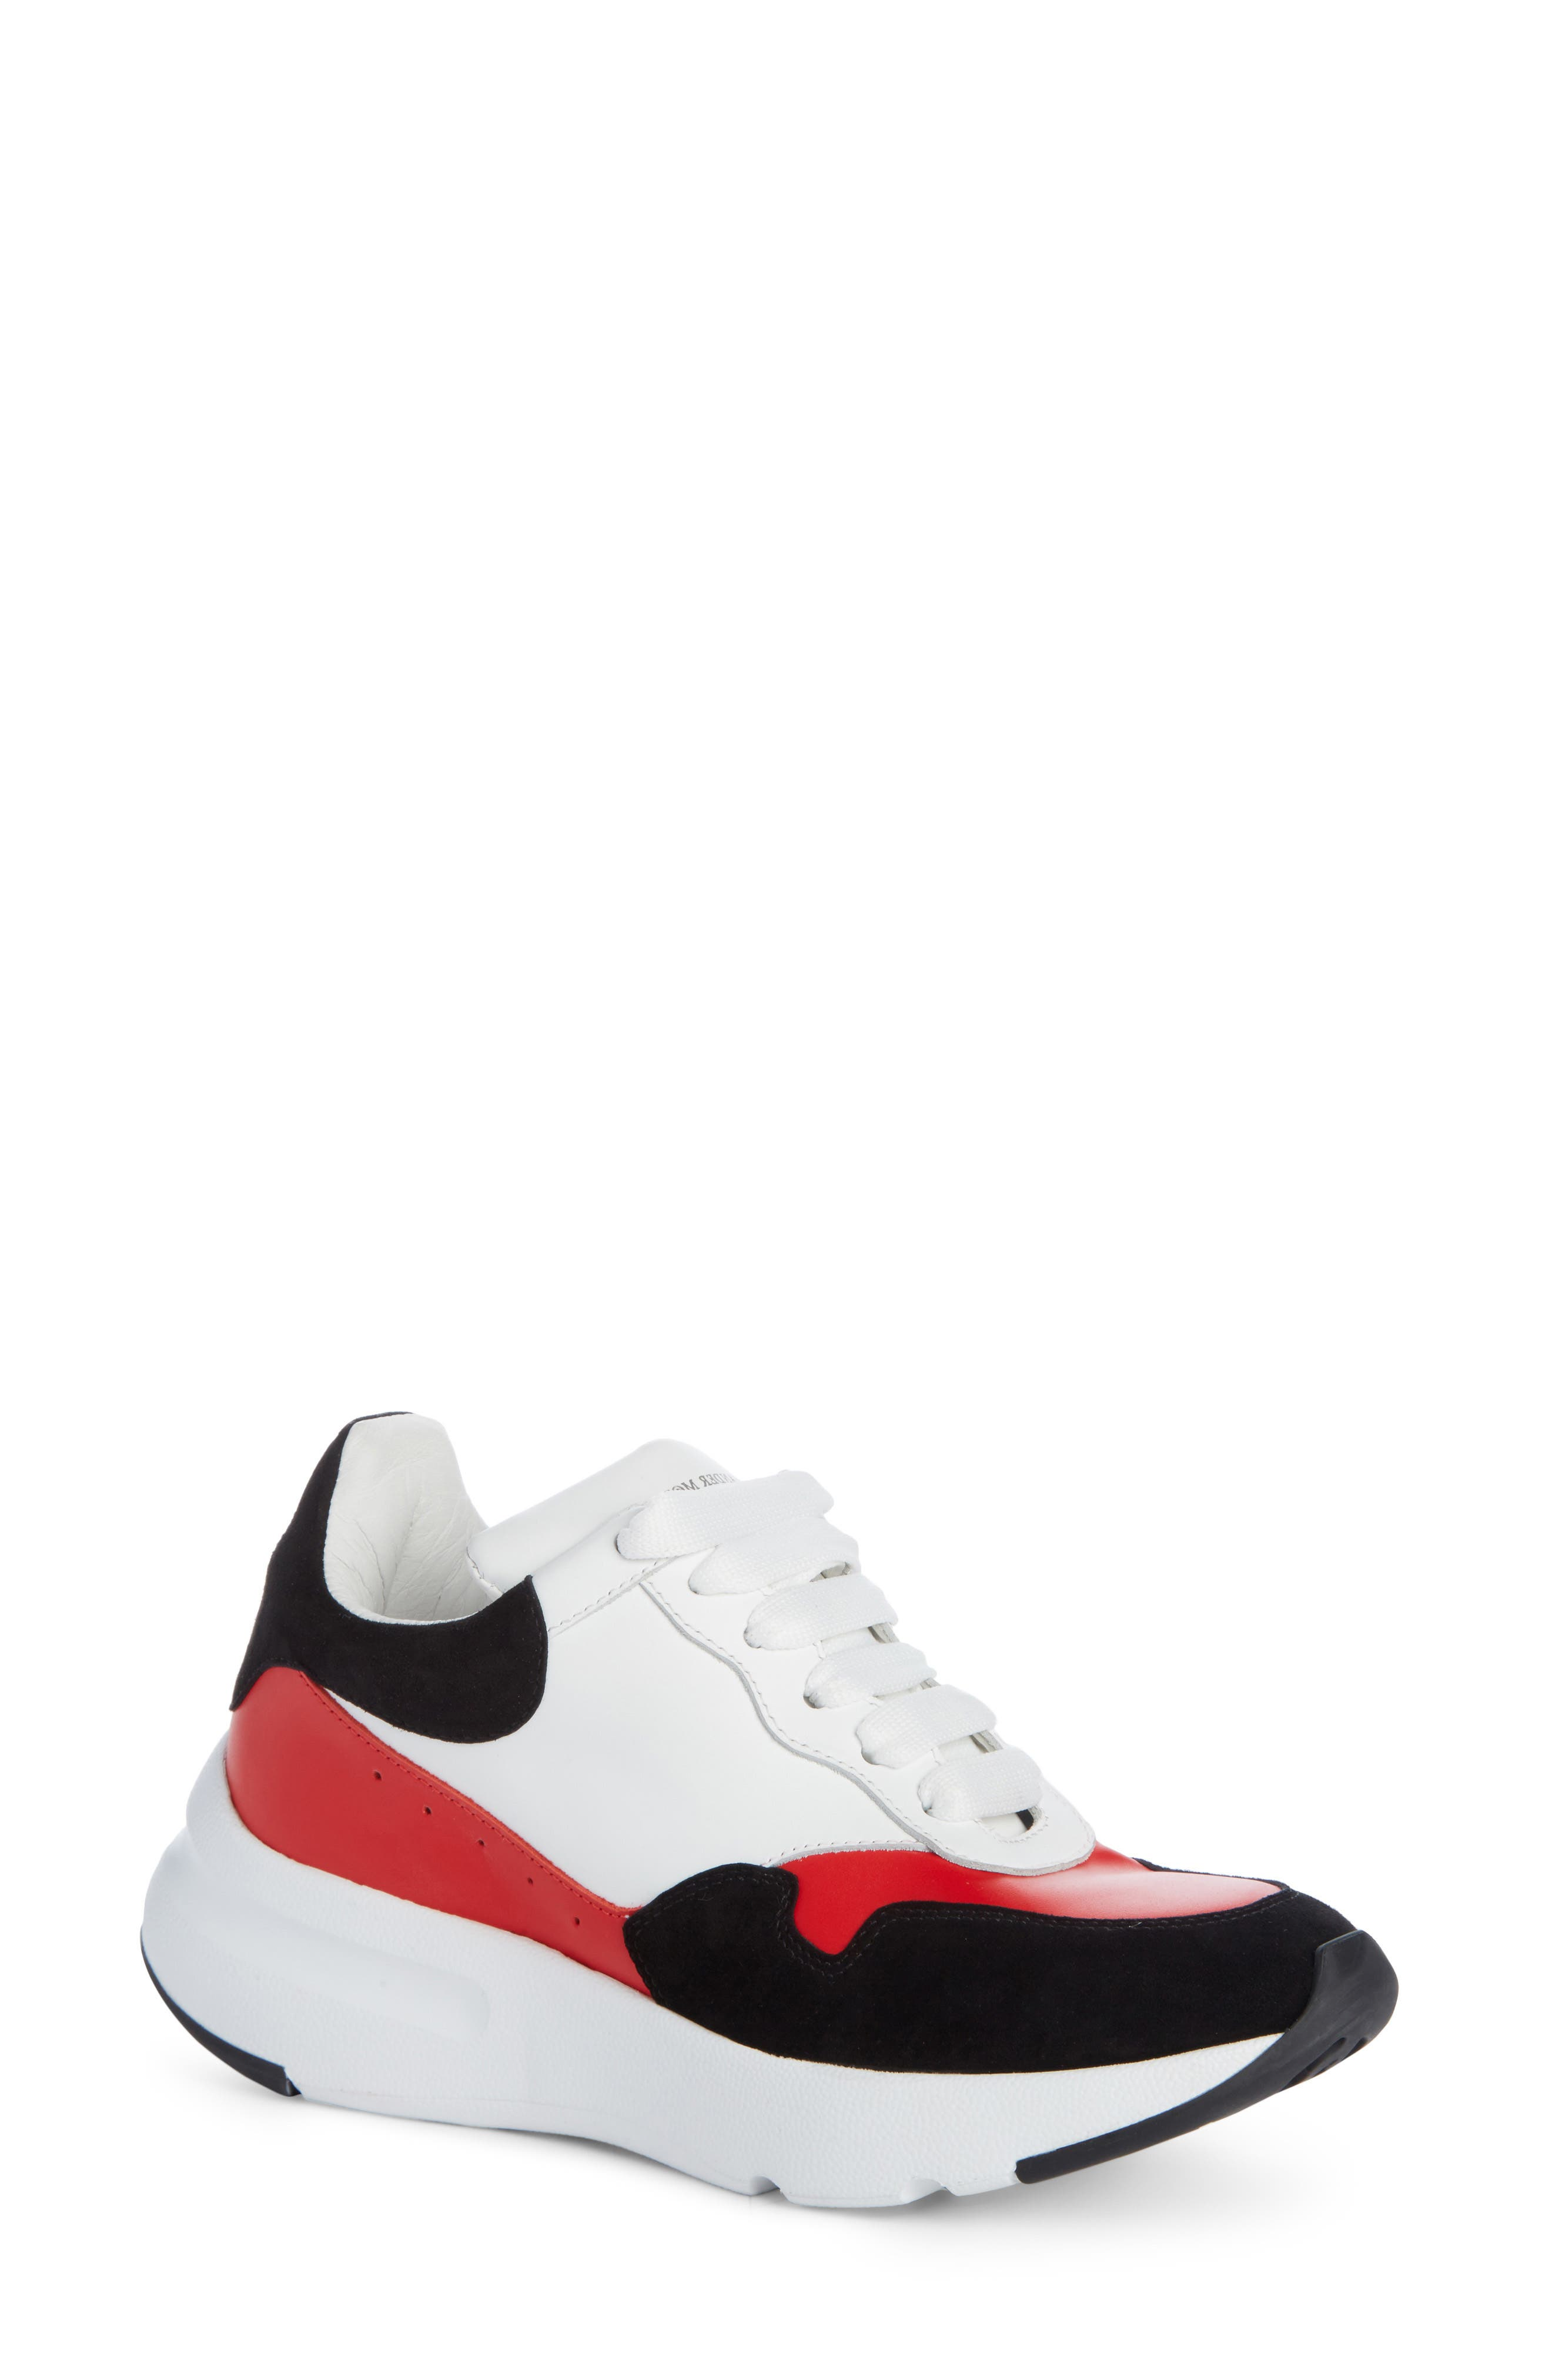 Runner Lace-Up Sneaker,                             Main thumbnail 1, color,                             Black/ Red/ White